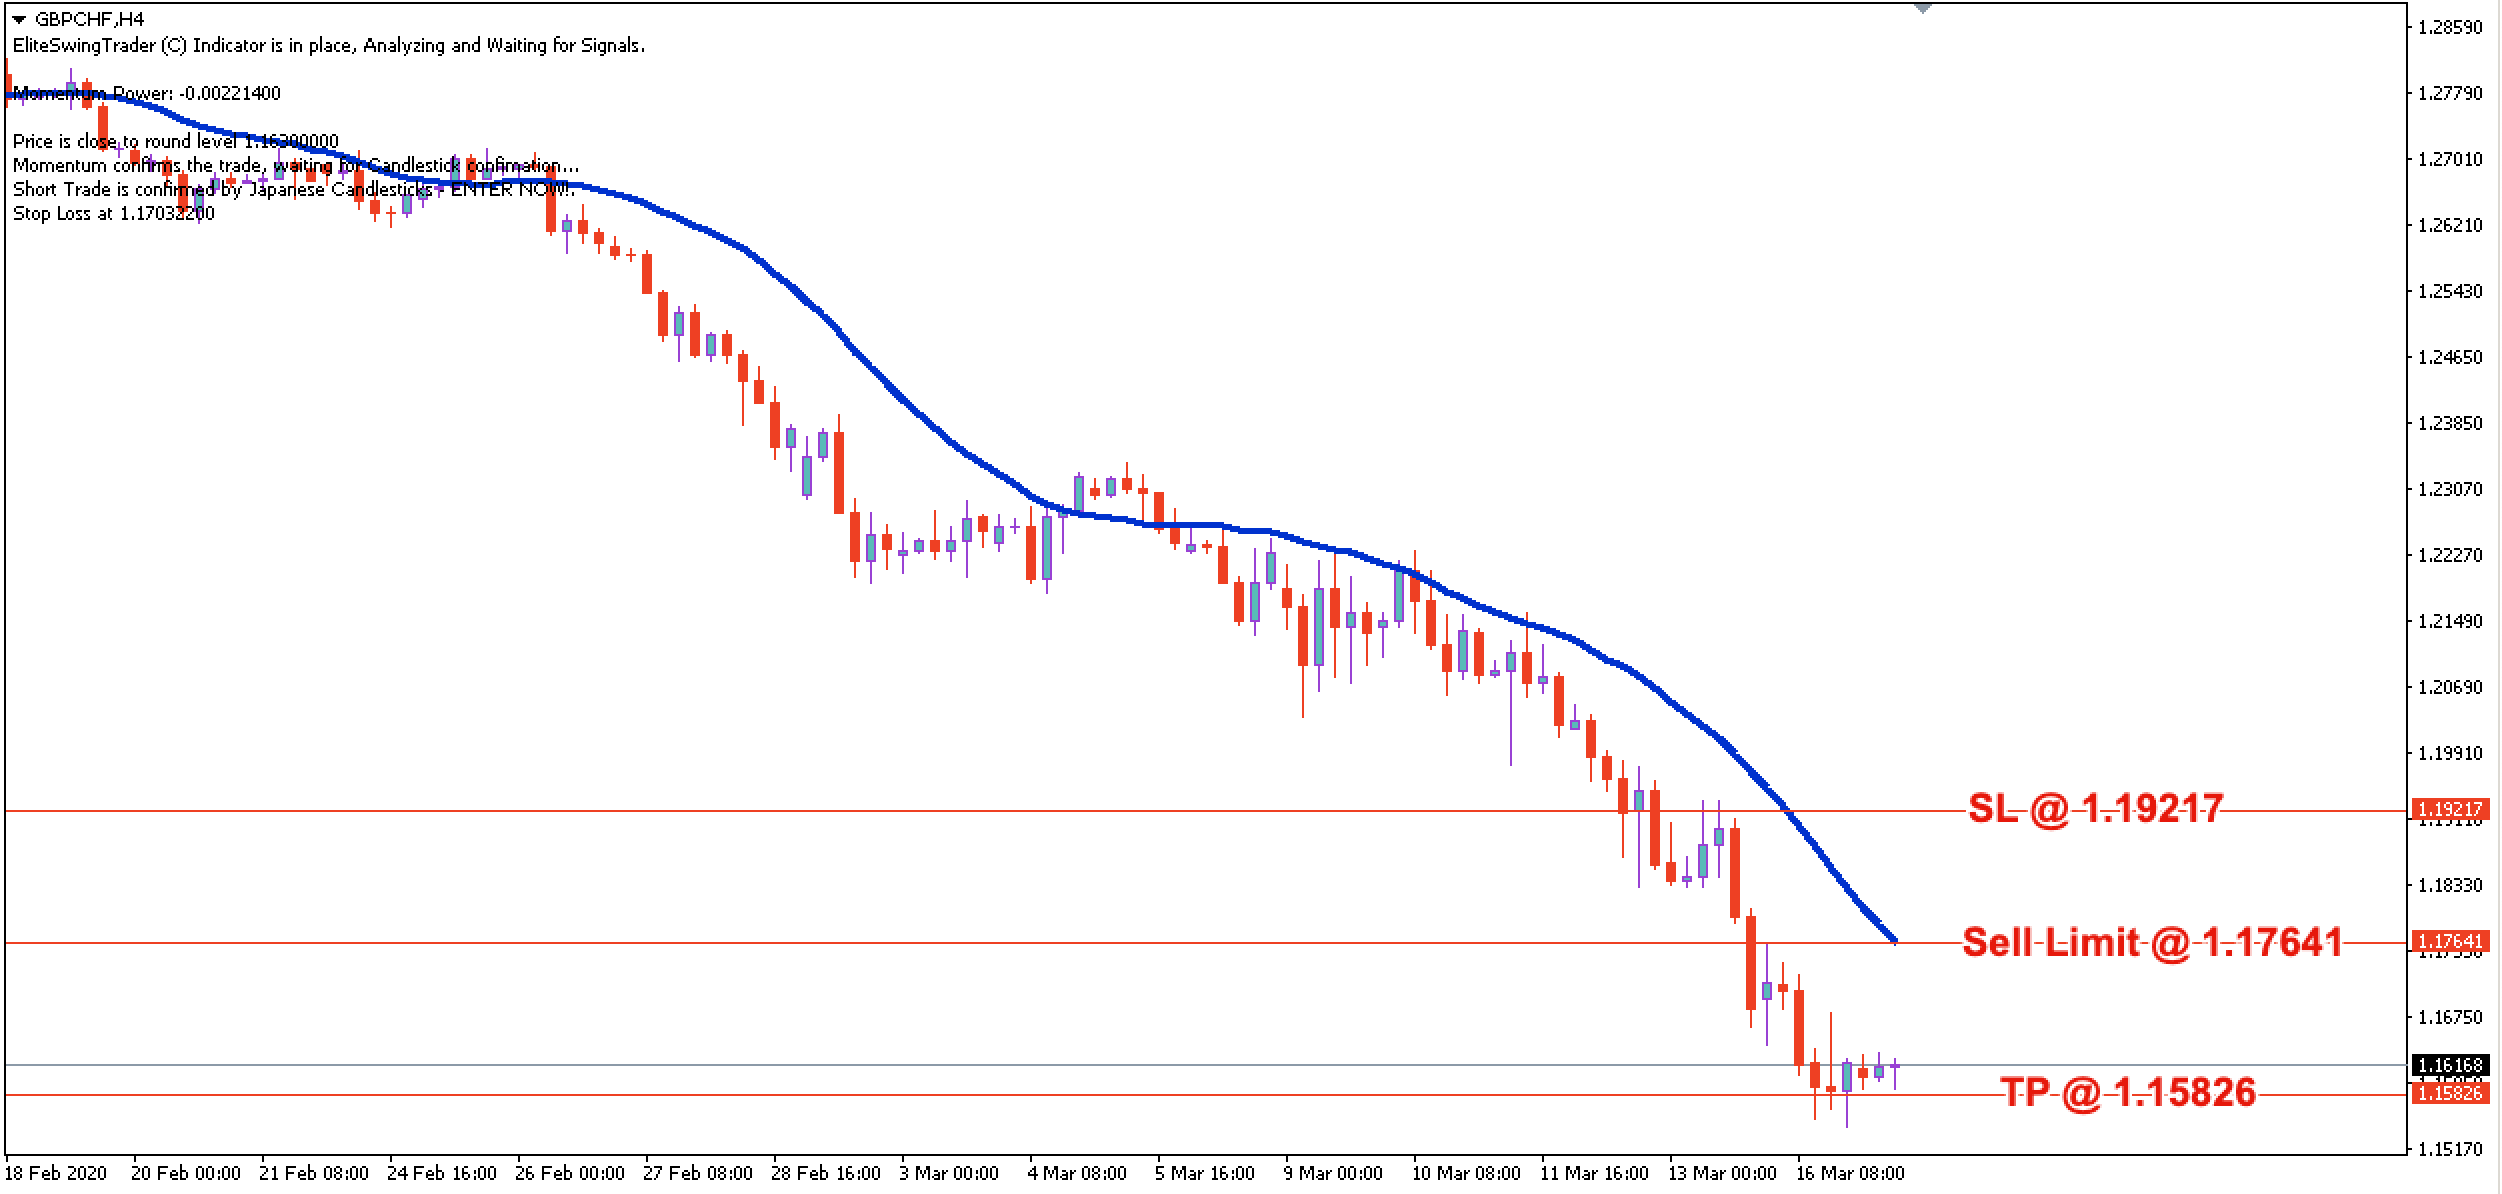 GBP/CHF Daily Price Forecast – 17th March 2020